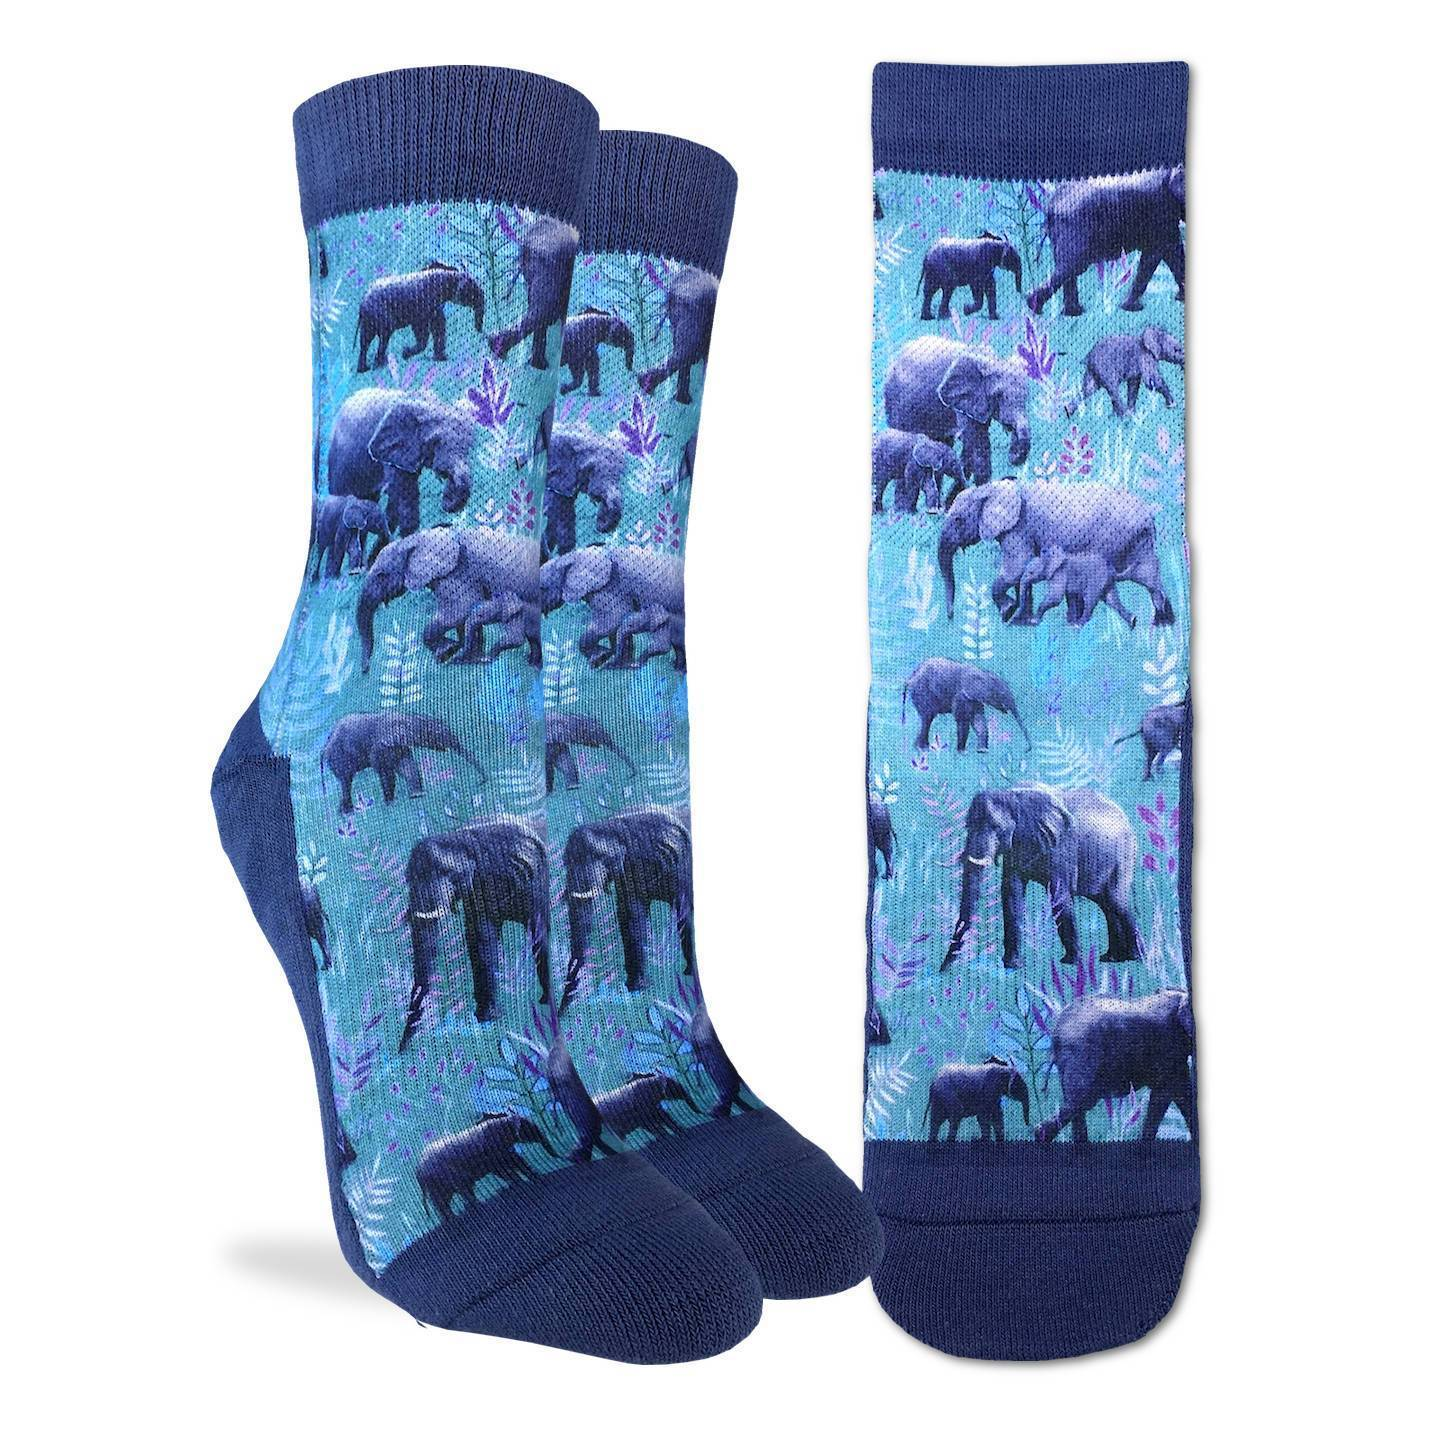 Women's Herd of Elephants Socks - Good Luck Sock